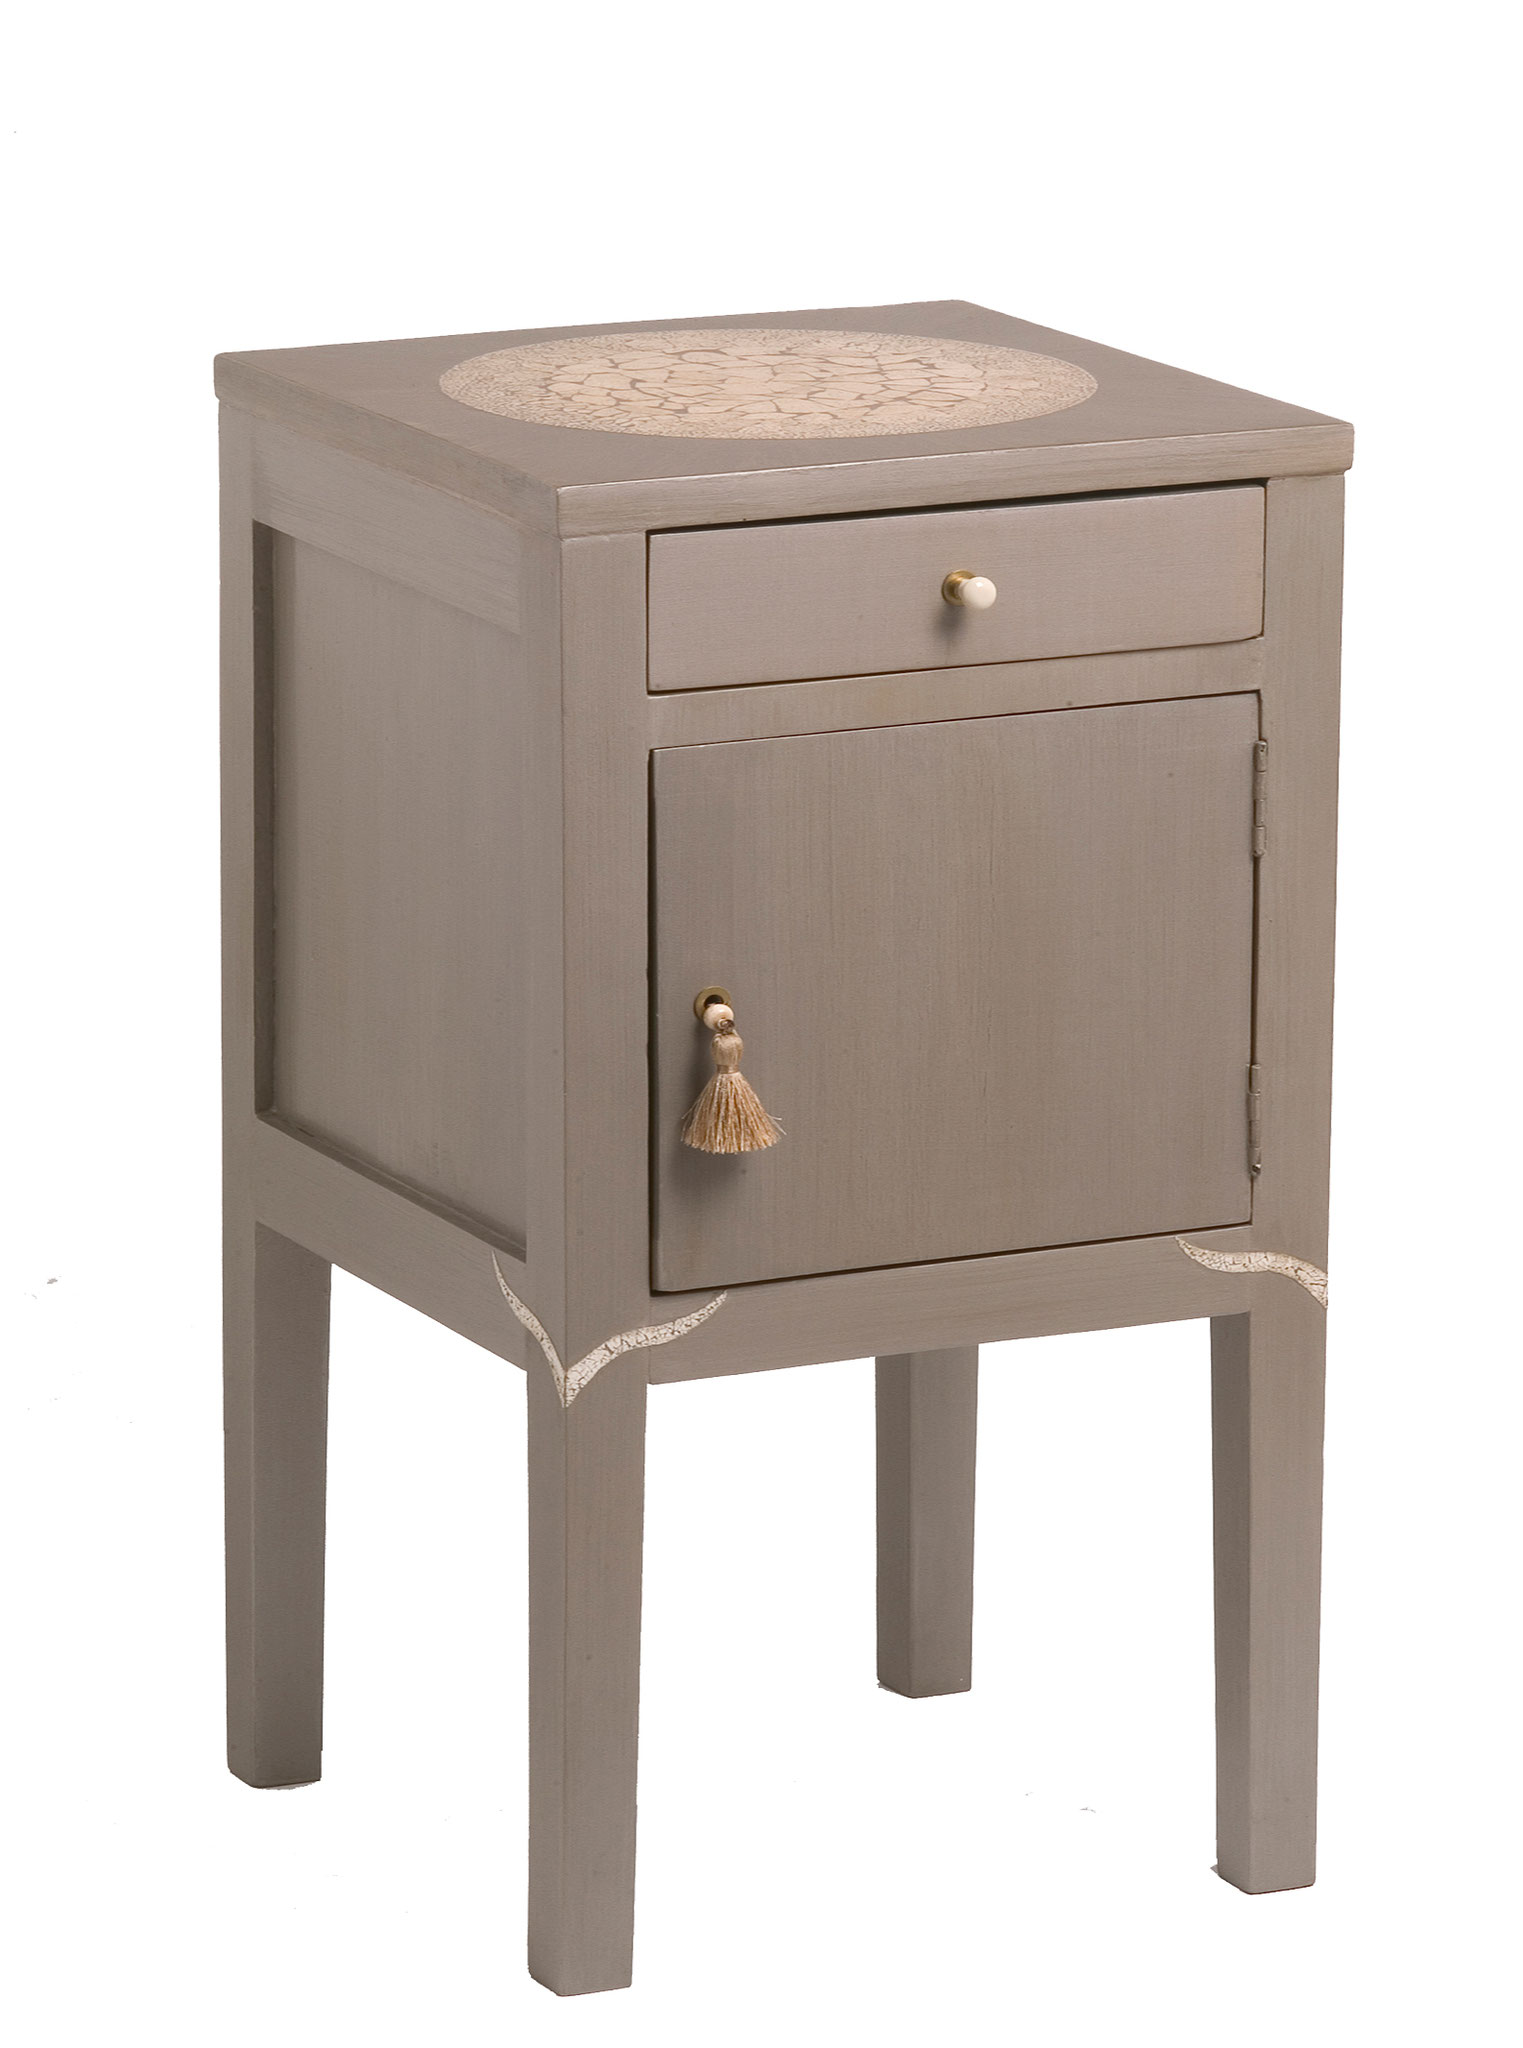 Bedside table acquered with eggshell inlays on the top and legs. Drawer pull of white resin. Door pull of silk tassel on a bone pearl - Vintage piece from the 1940's - 67 x 35 x 35 cm